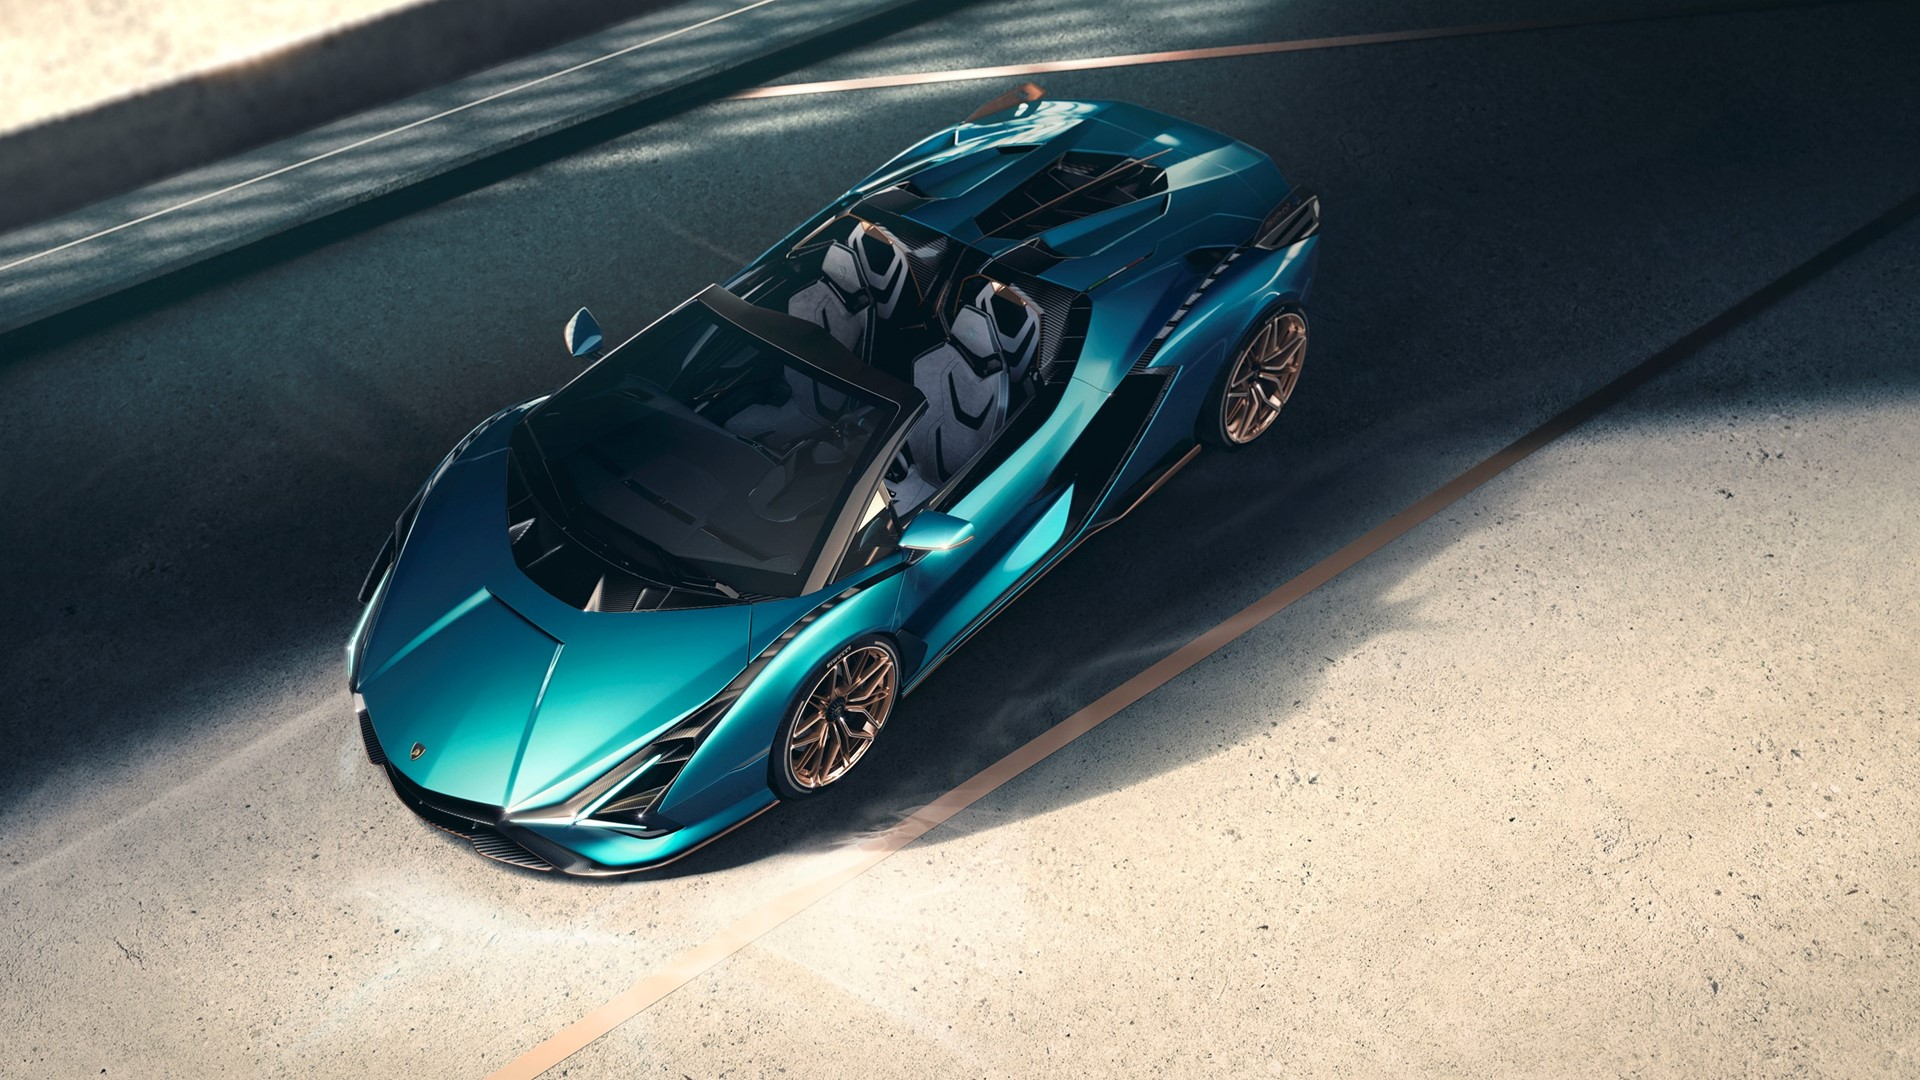 The Lamborghini Sián Roadster: Experience future technology under open skies - Image 2